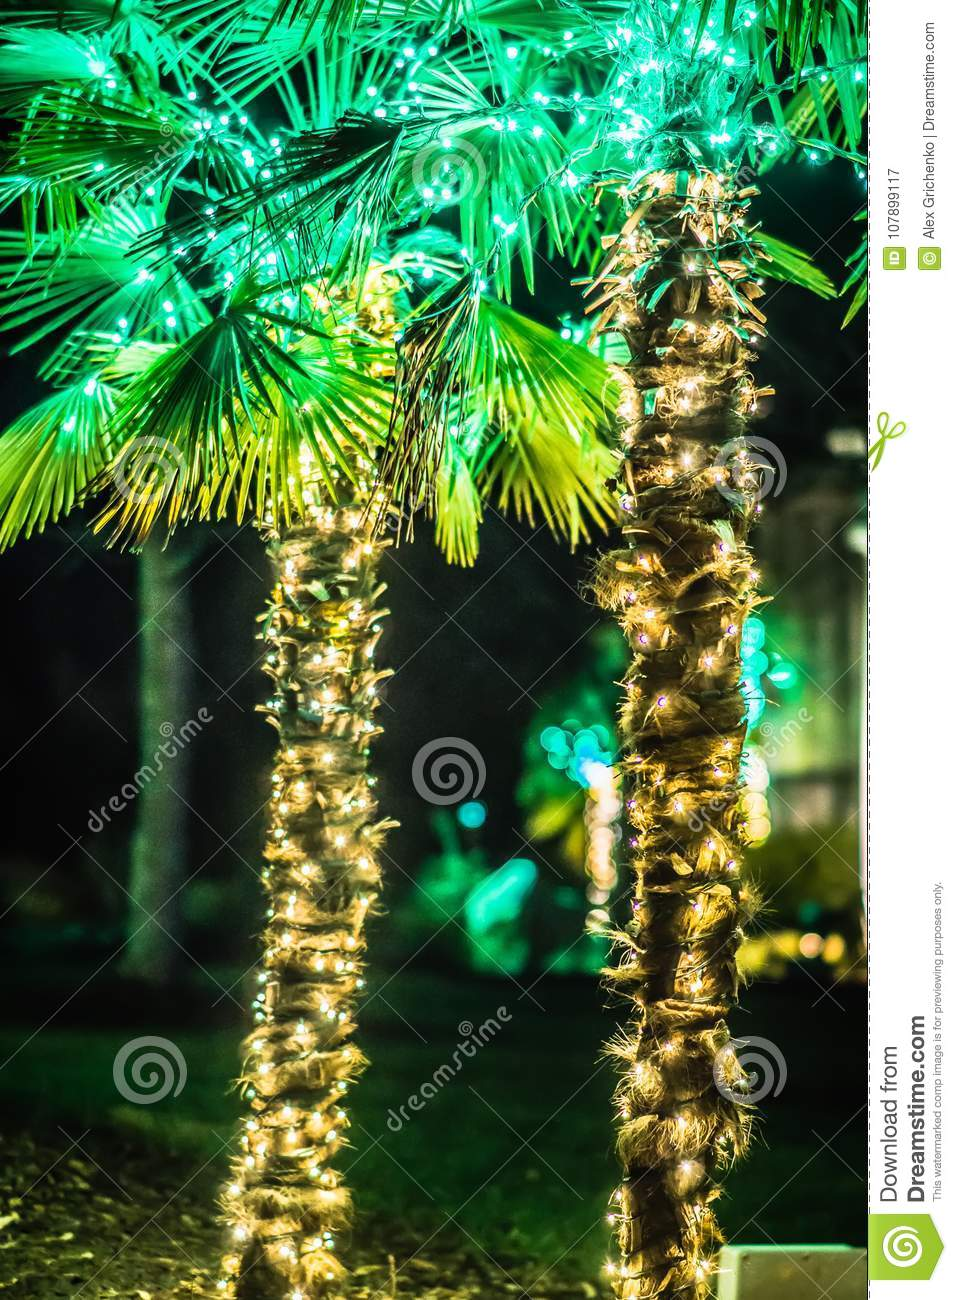 Palm Trees Decorated With Christmas Lights In Gardens Stock Image